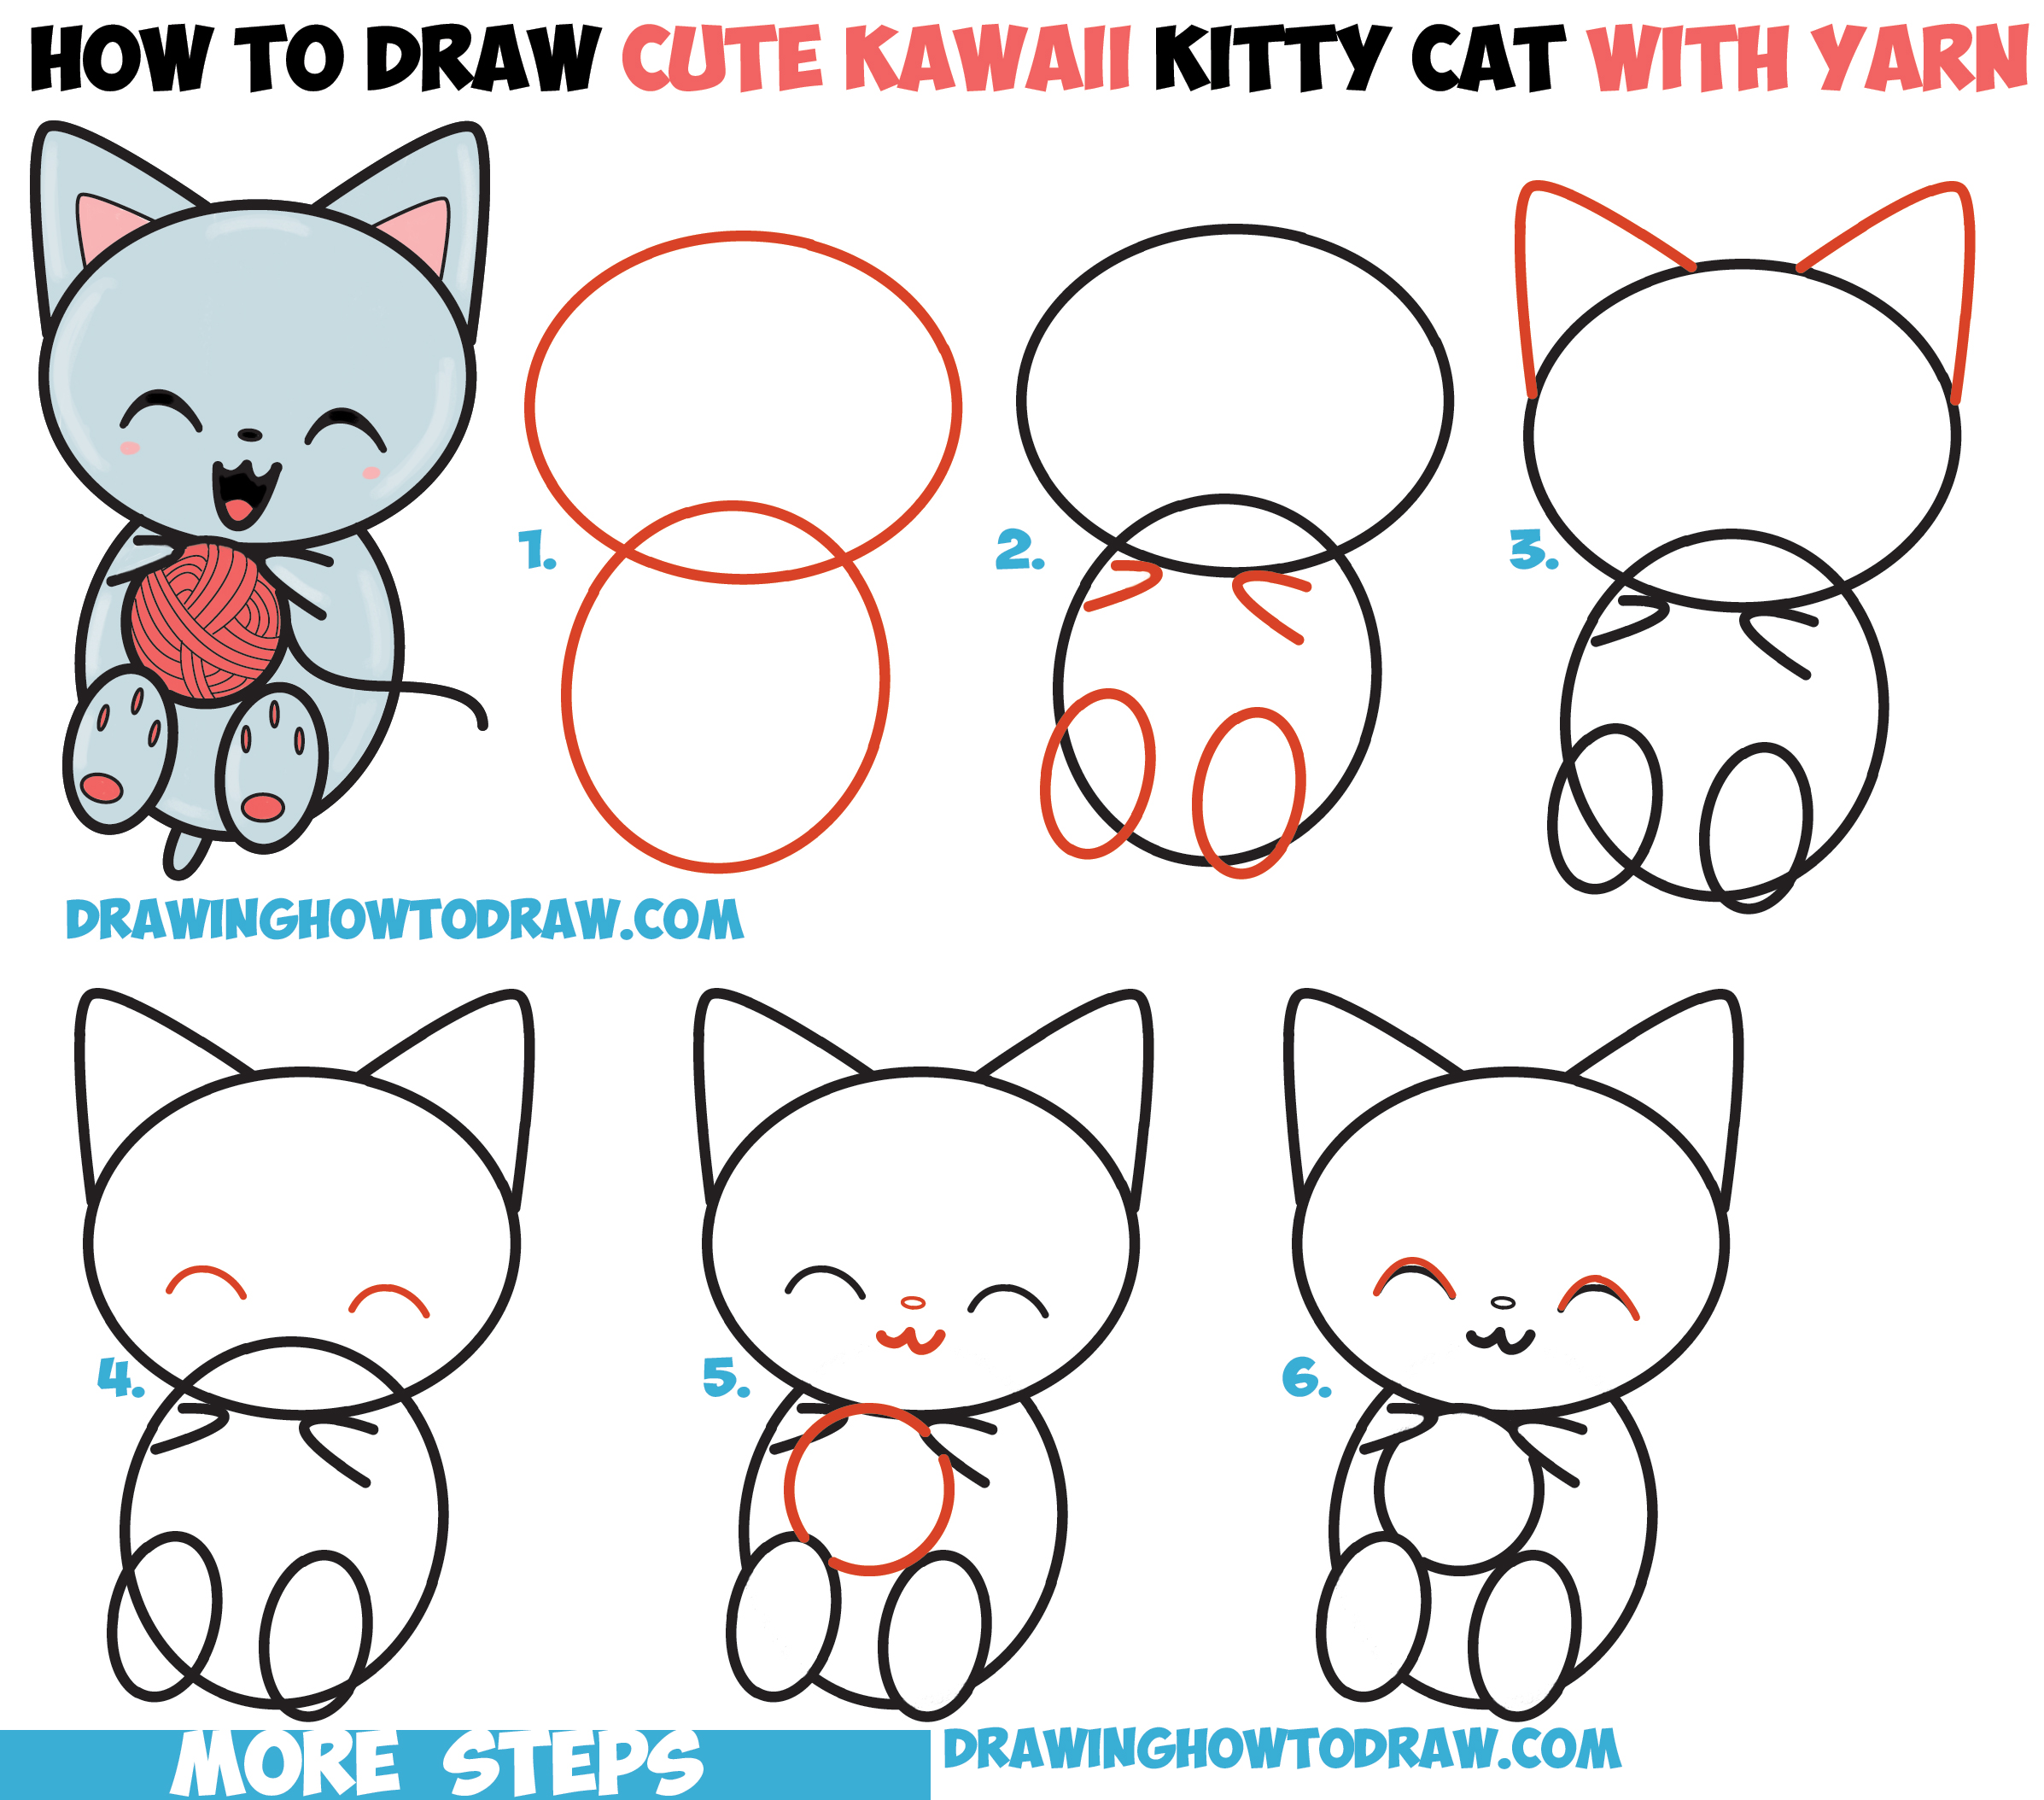 How to draw cute kawaii kitten cat playing with yarn for Drawing ideas for beginners step by step